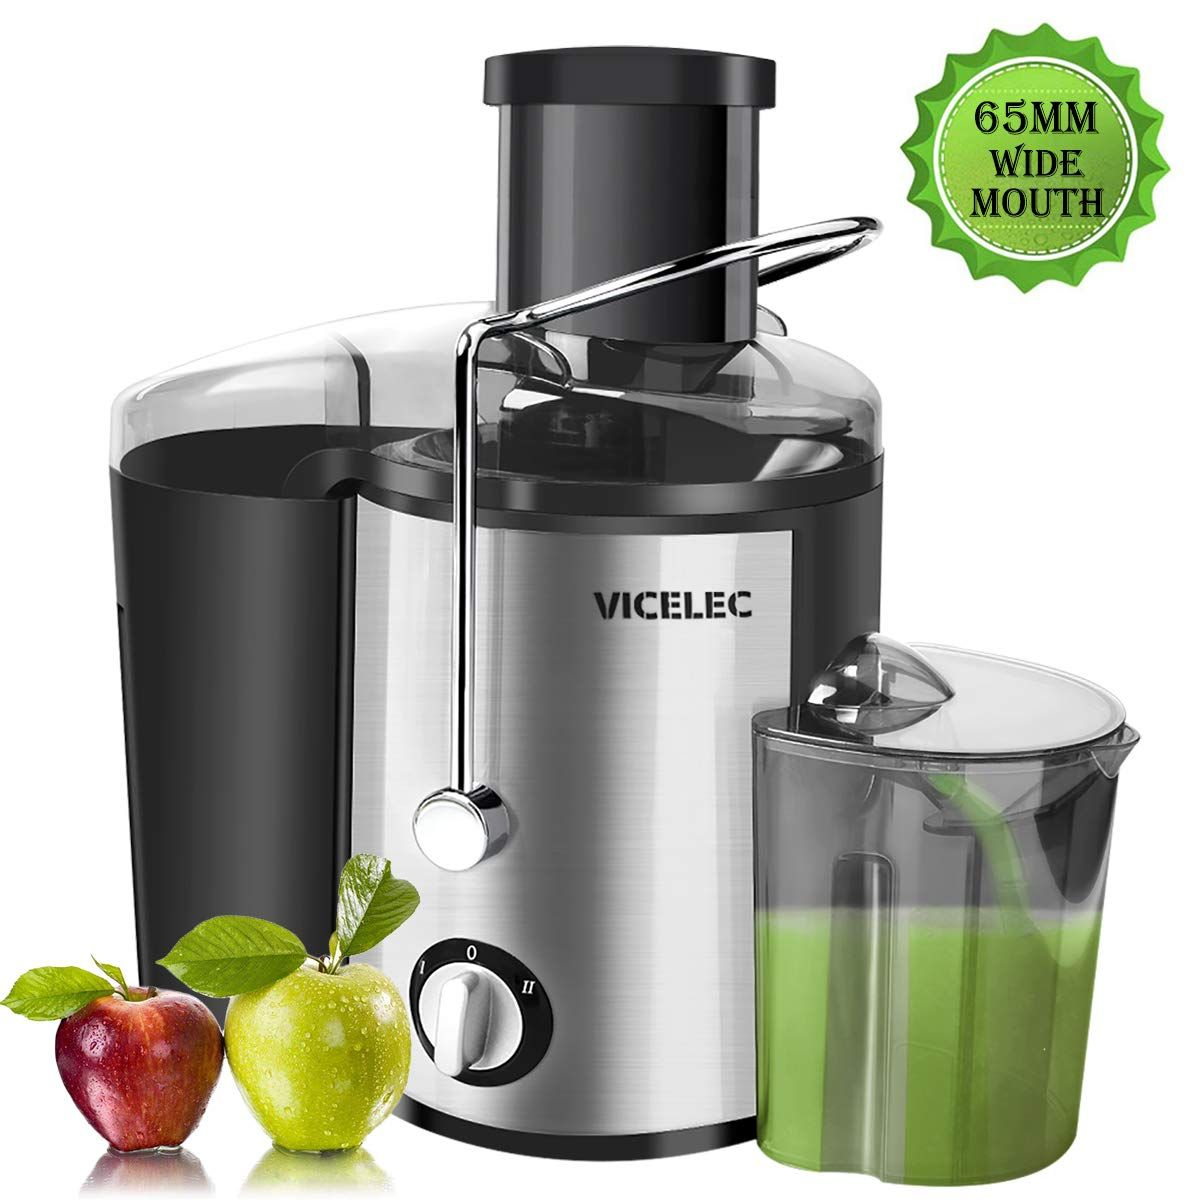 Vegetable Extractor Stainless